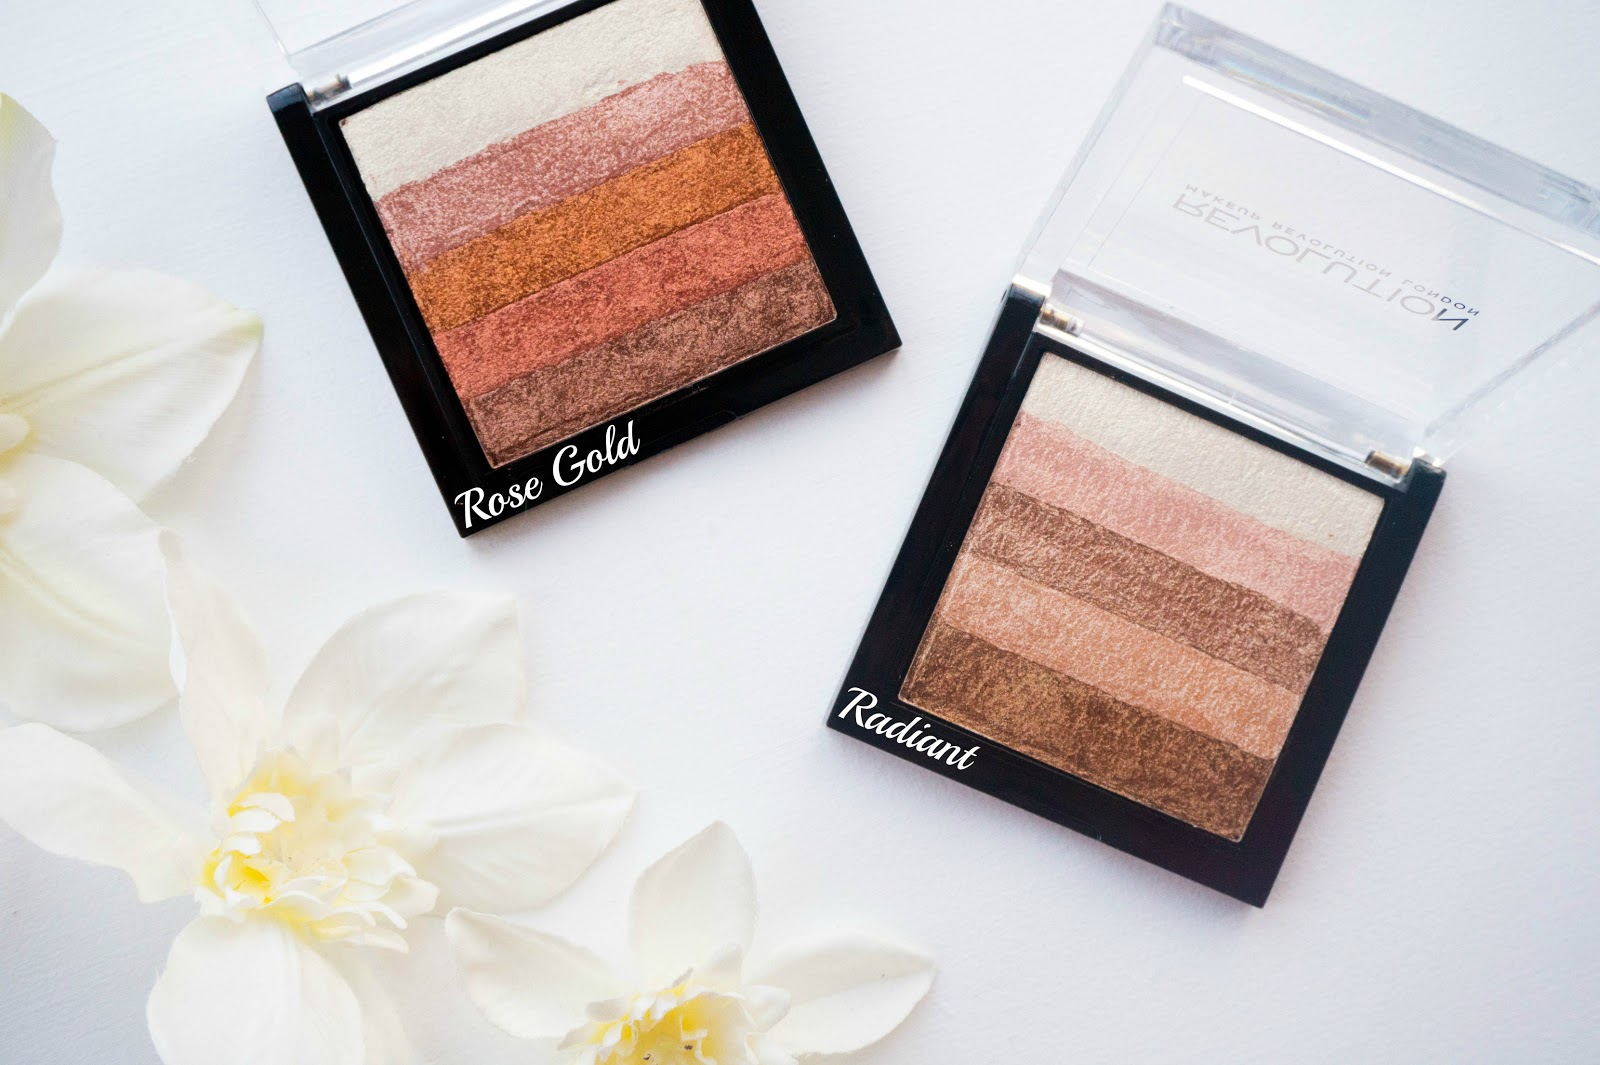 Makeup Revolution Shimmer Brick Rose Gold, Radiant